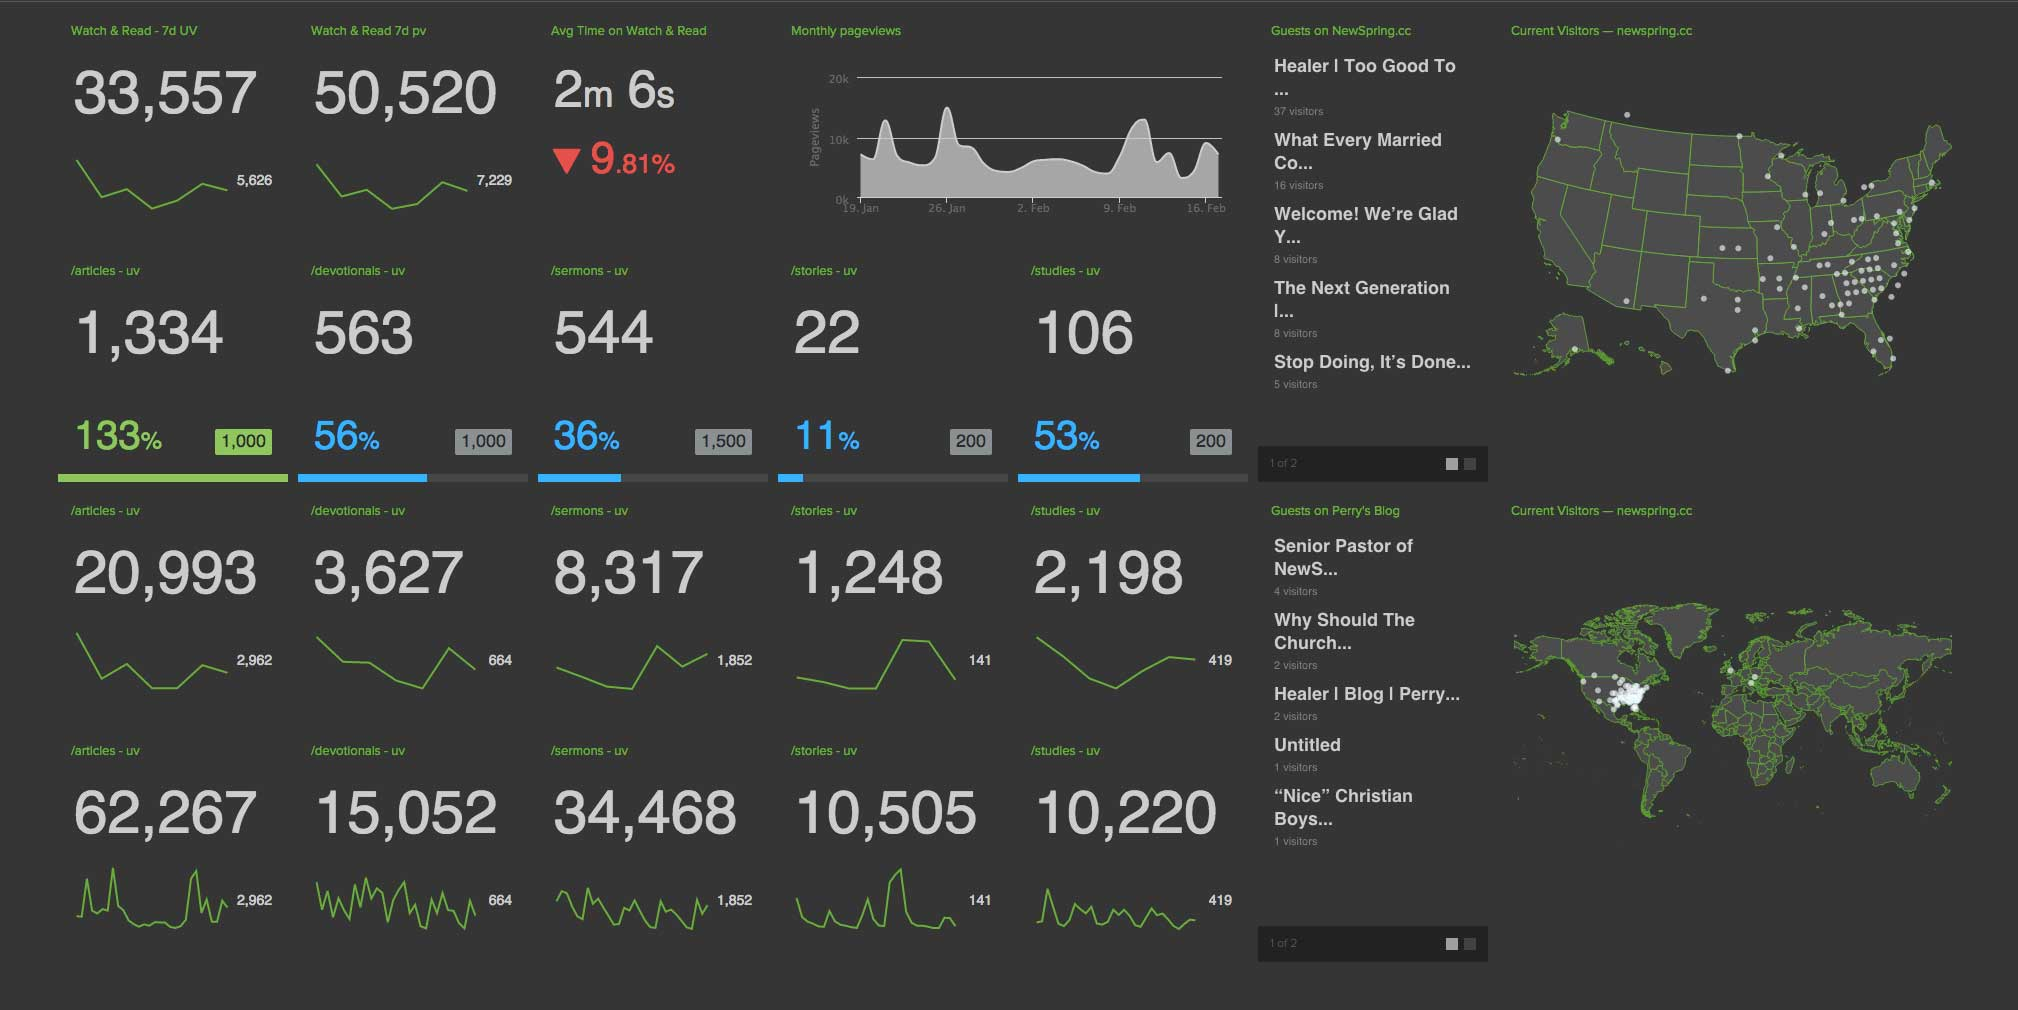 NewSpring dashboards